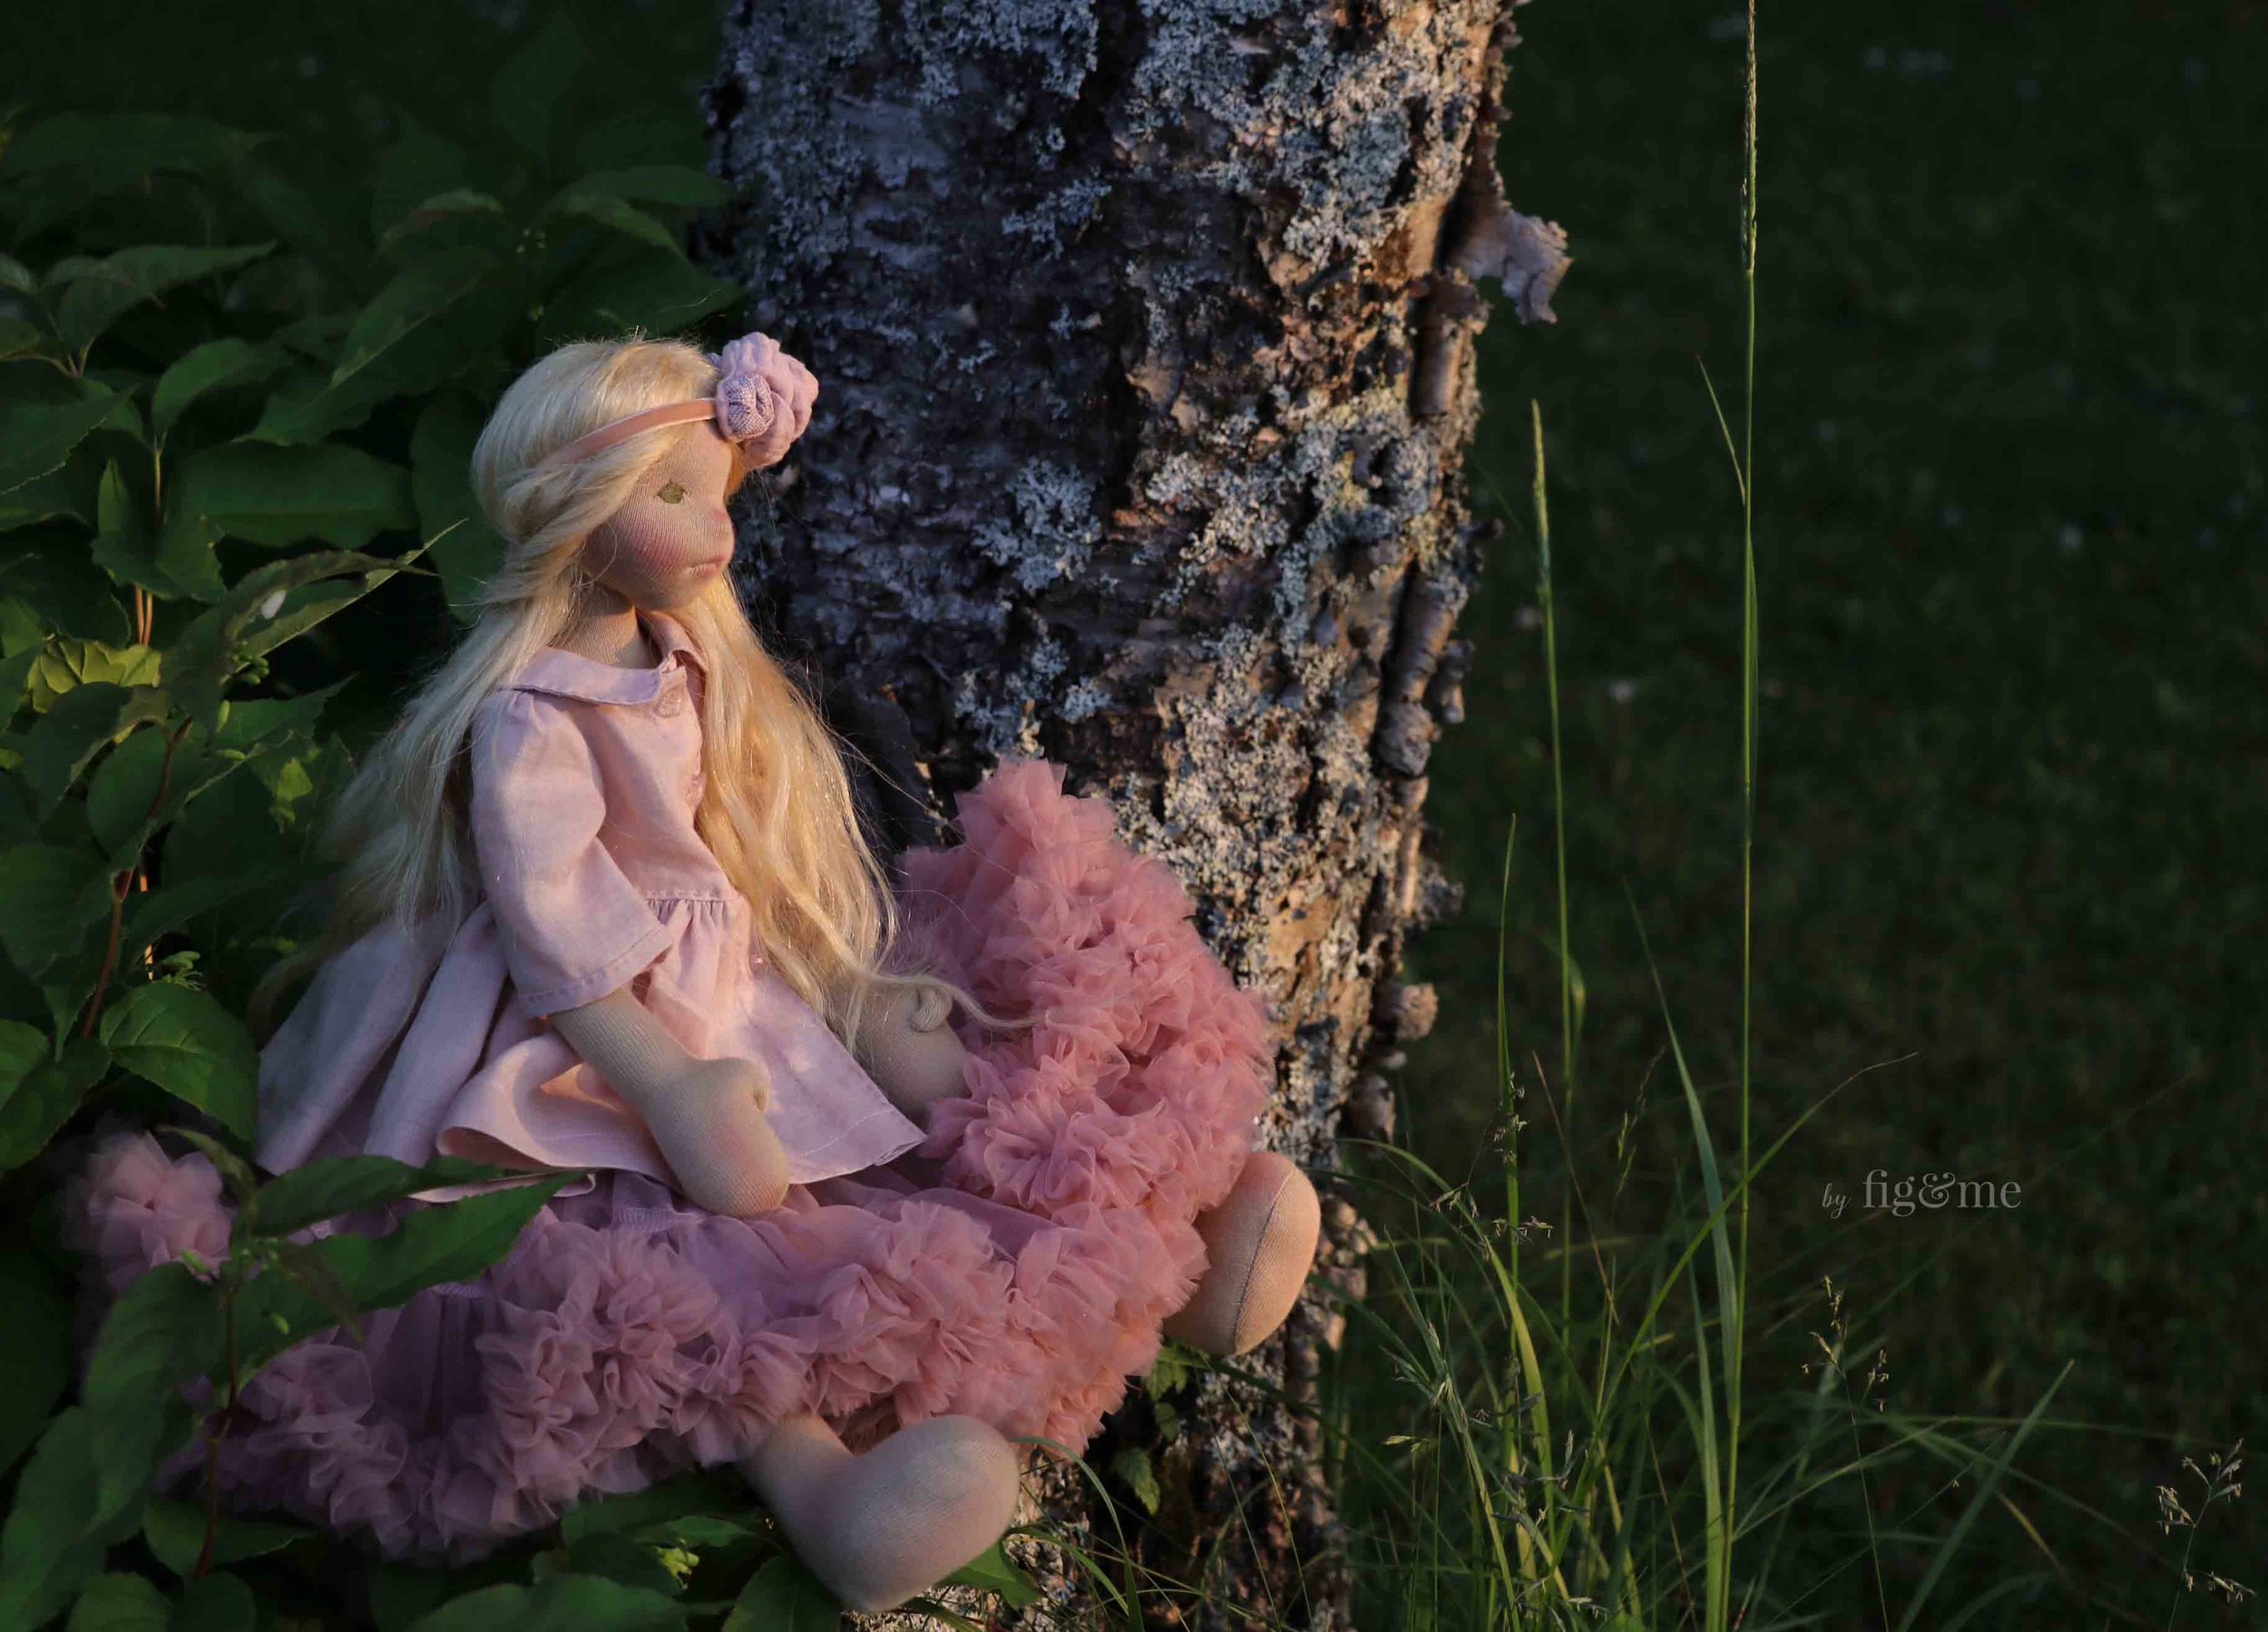 Octavia Rose at sunset. Art doll by fig and me.